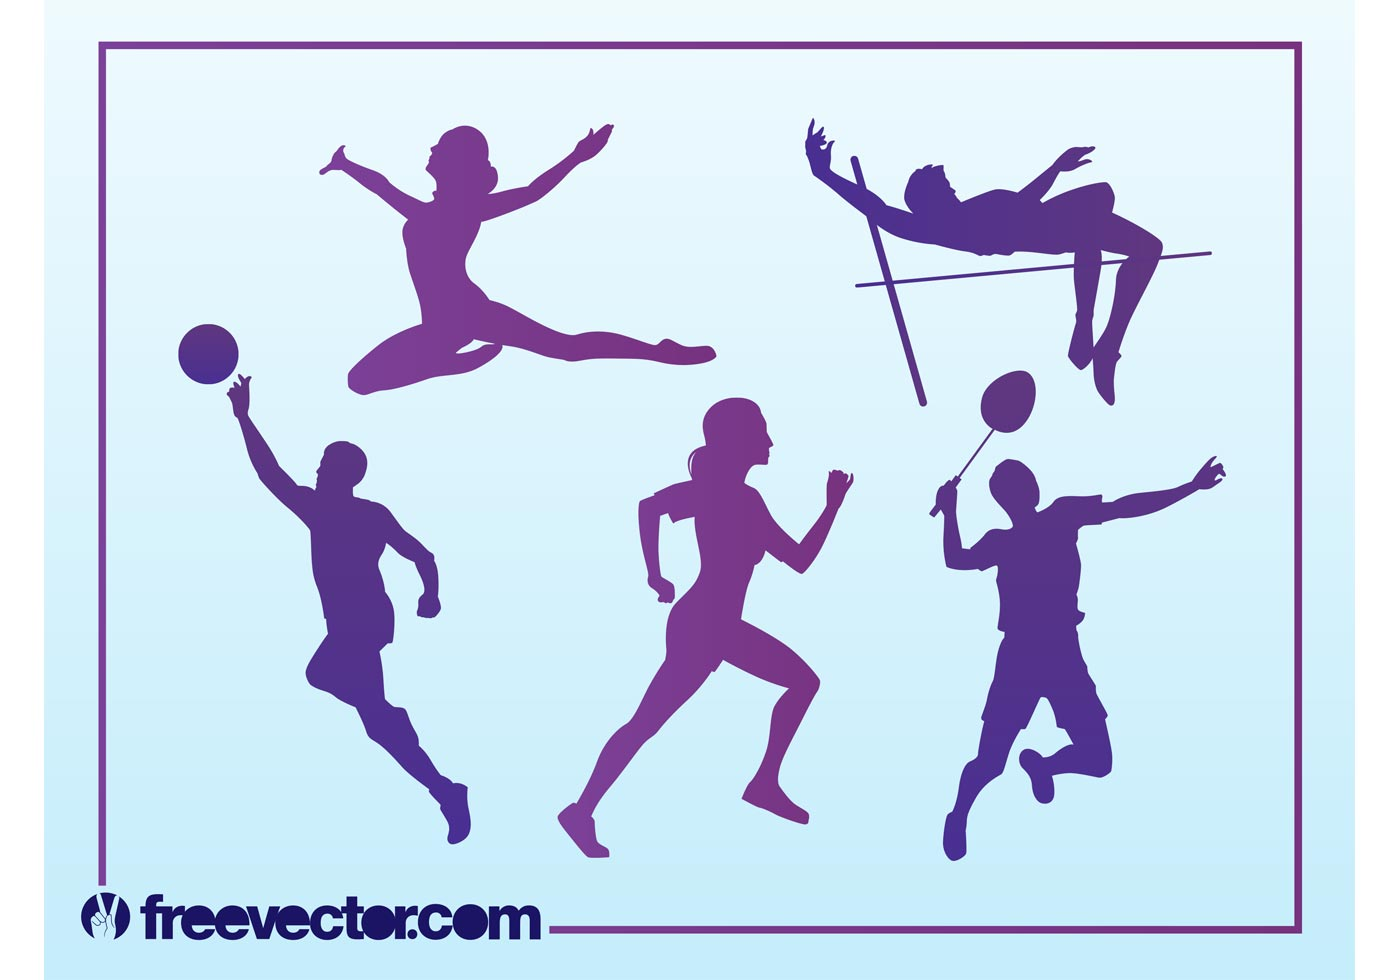 free-sport-silhouettes-vector.jpg